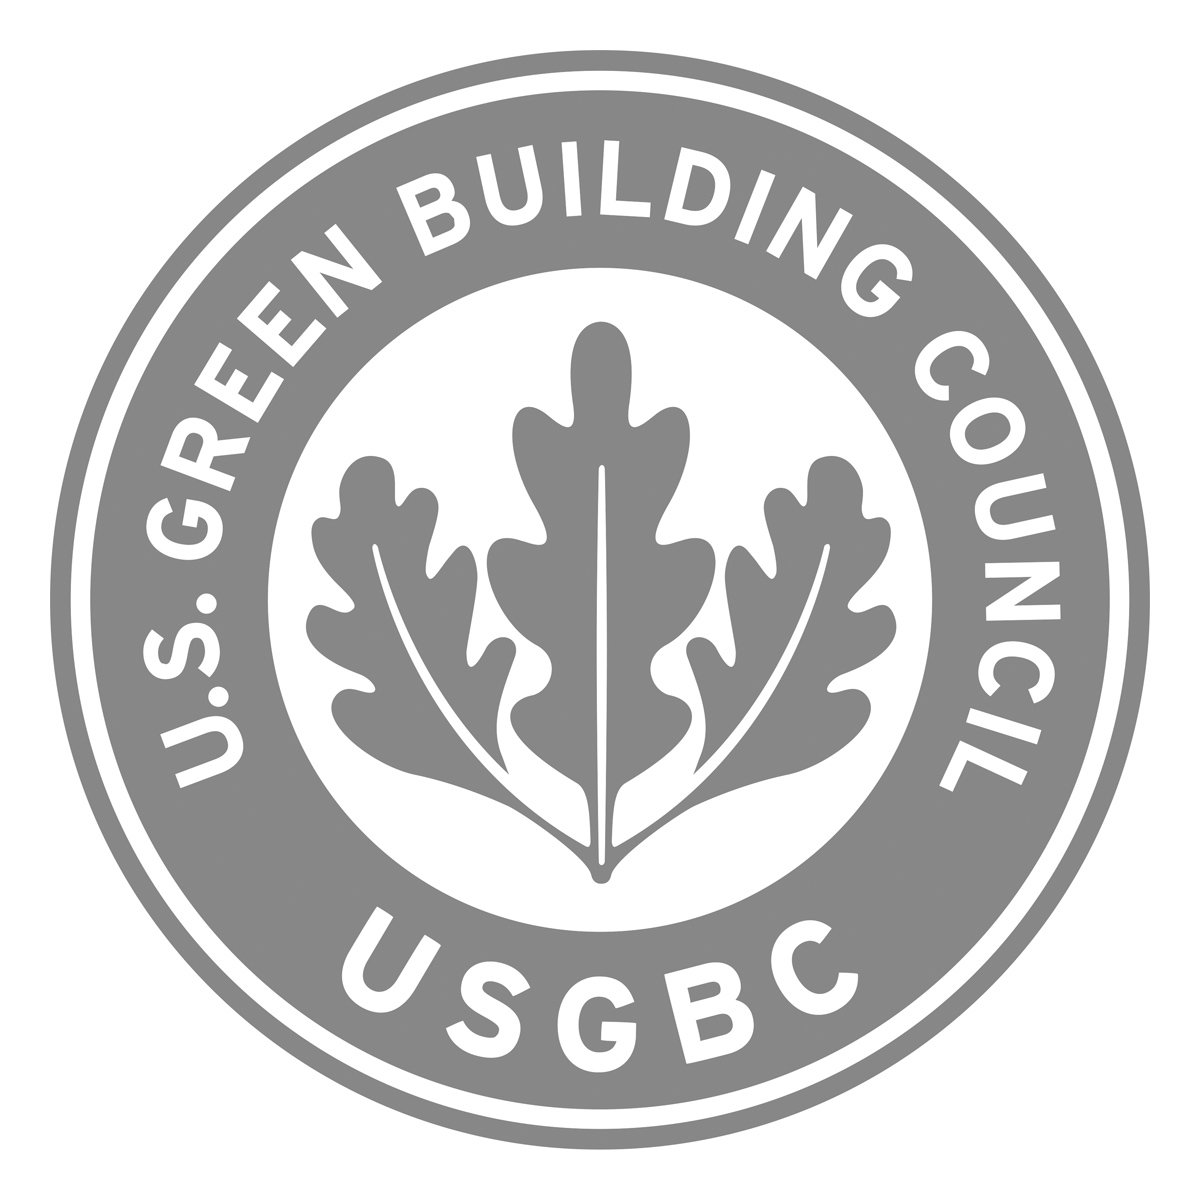 USGBC Announces International Rankings of Top 10 Countries for LEED 2016